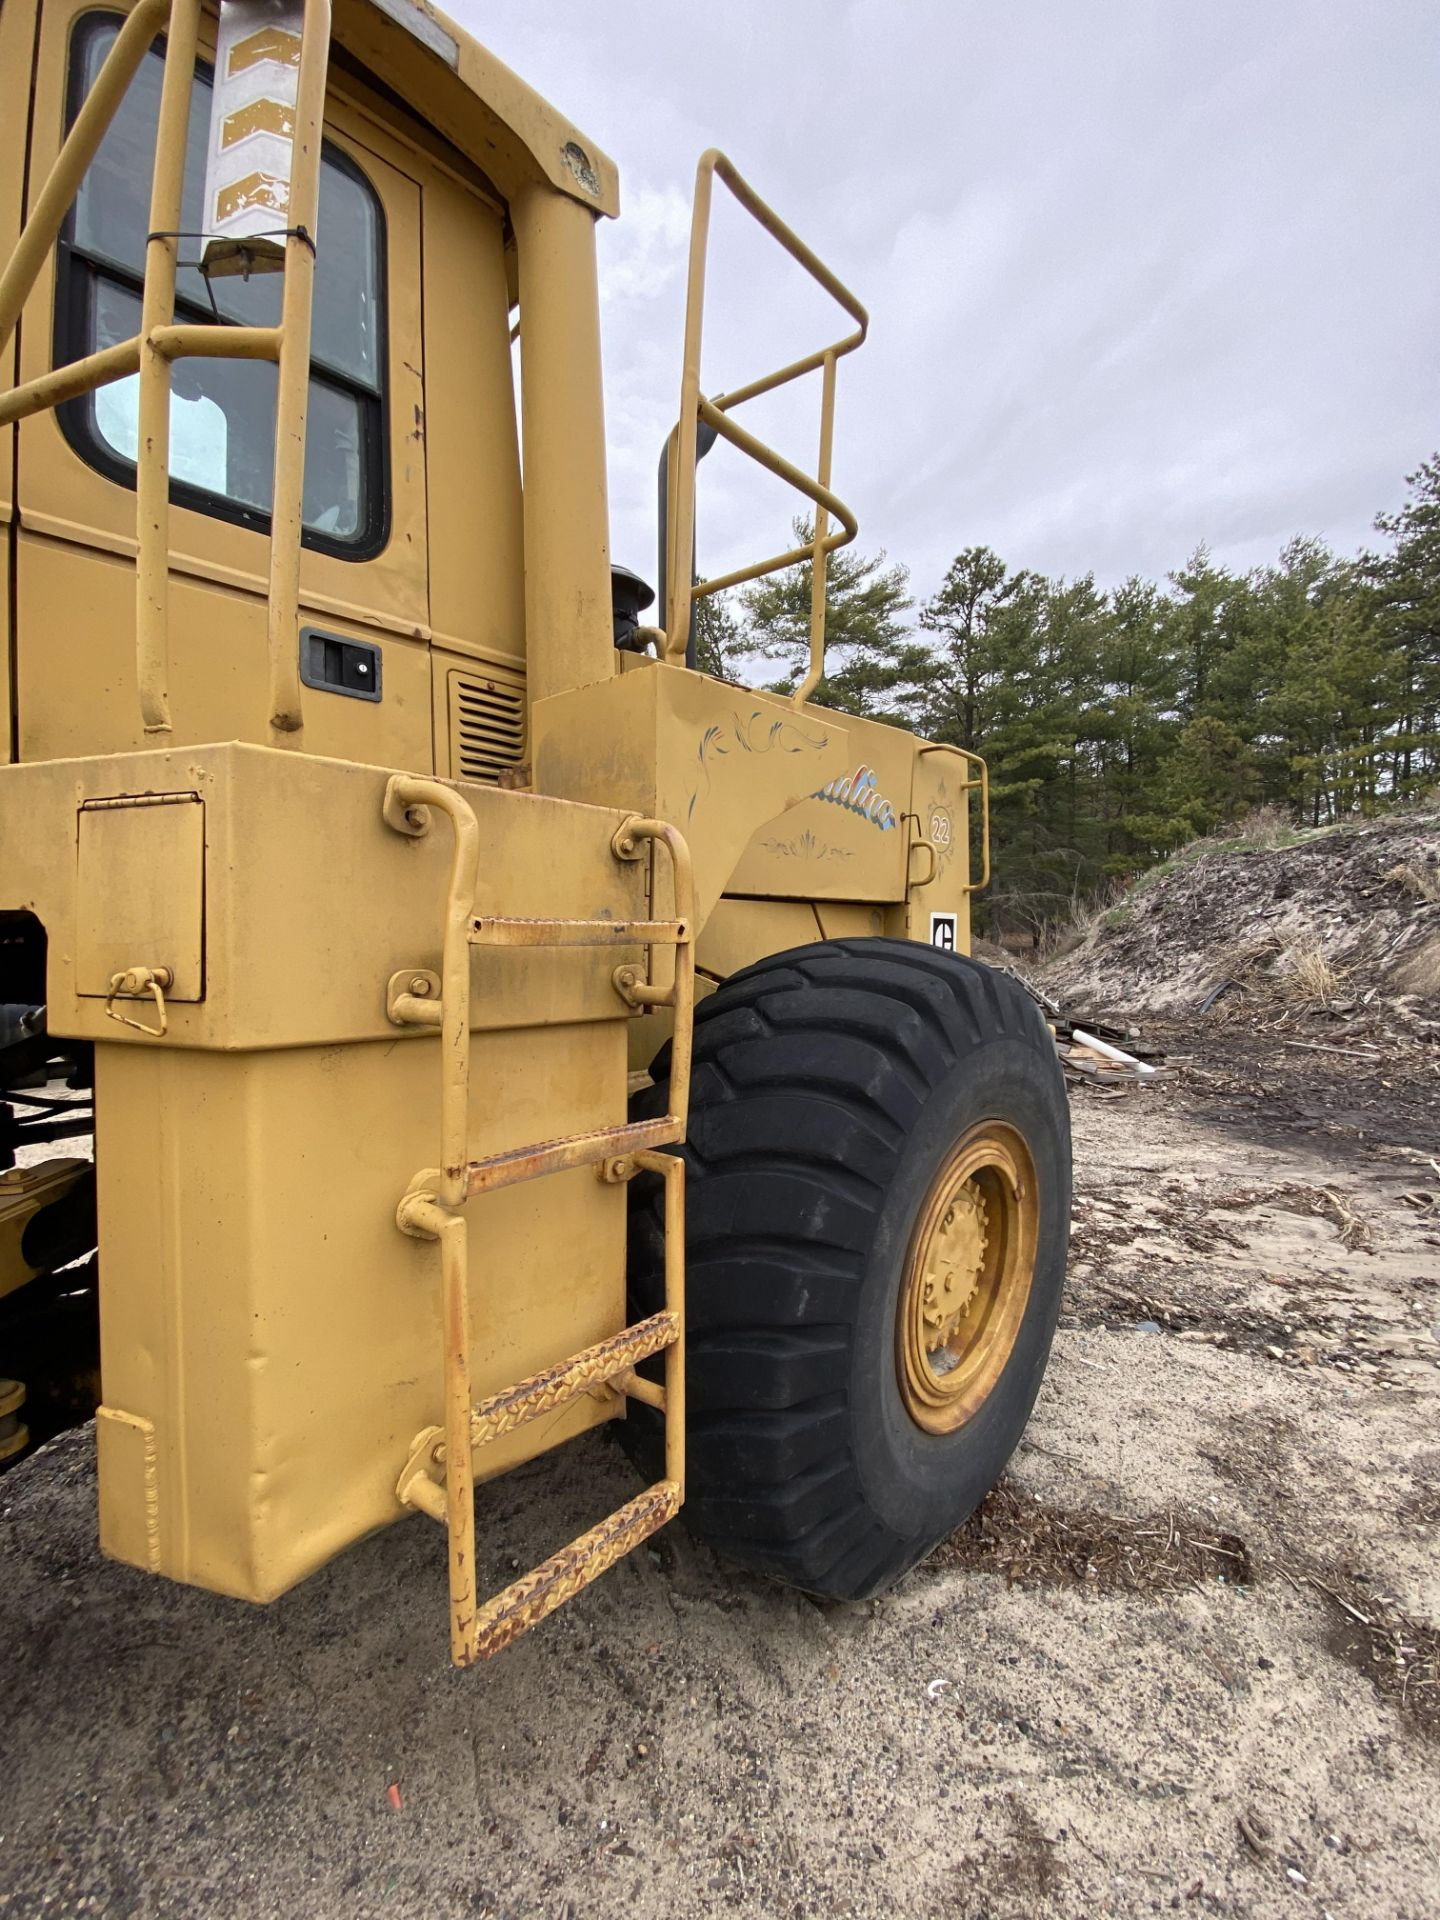 1980 Caterpillar 966D Wheel Loader s/n 99Y02108, Meter Reads 4,664 Hours, Have Title - Image 8 of 23